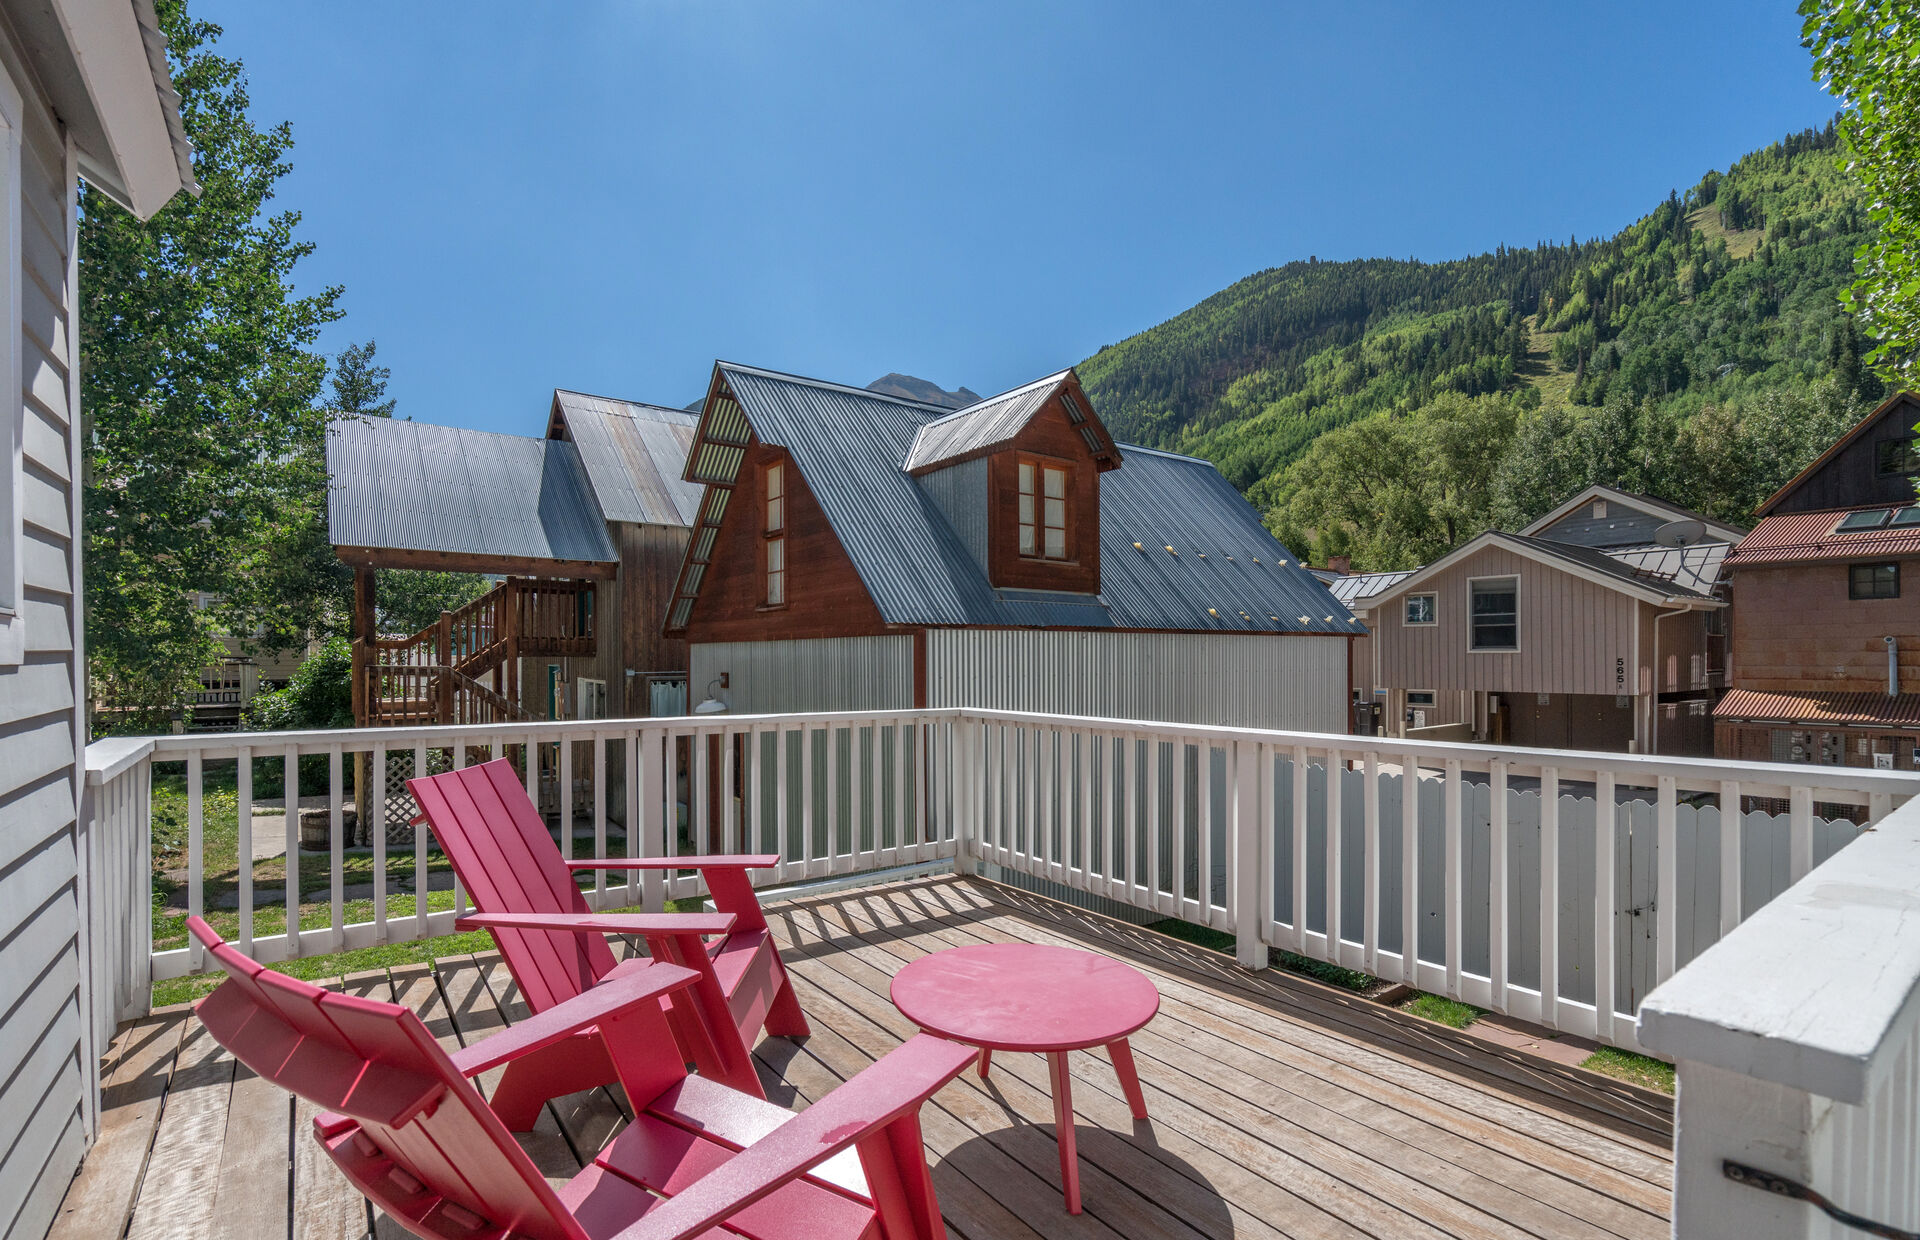 Porch at this telluride vacation cabin.